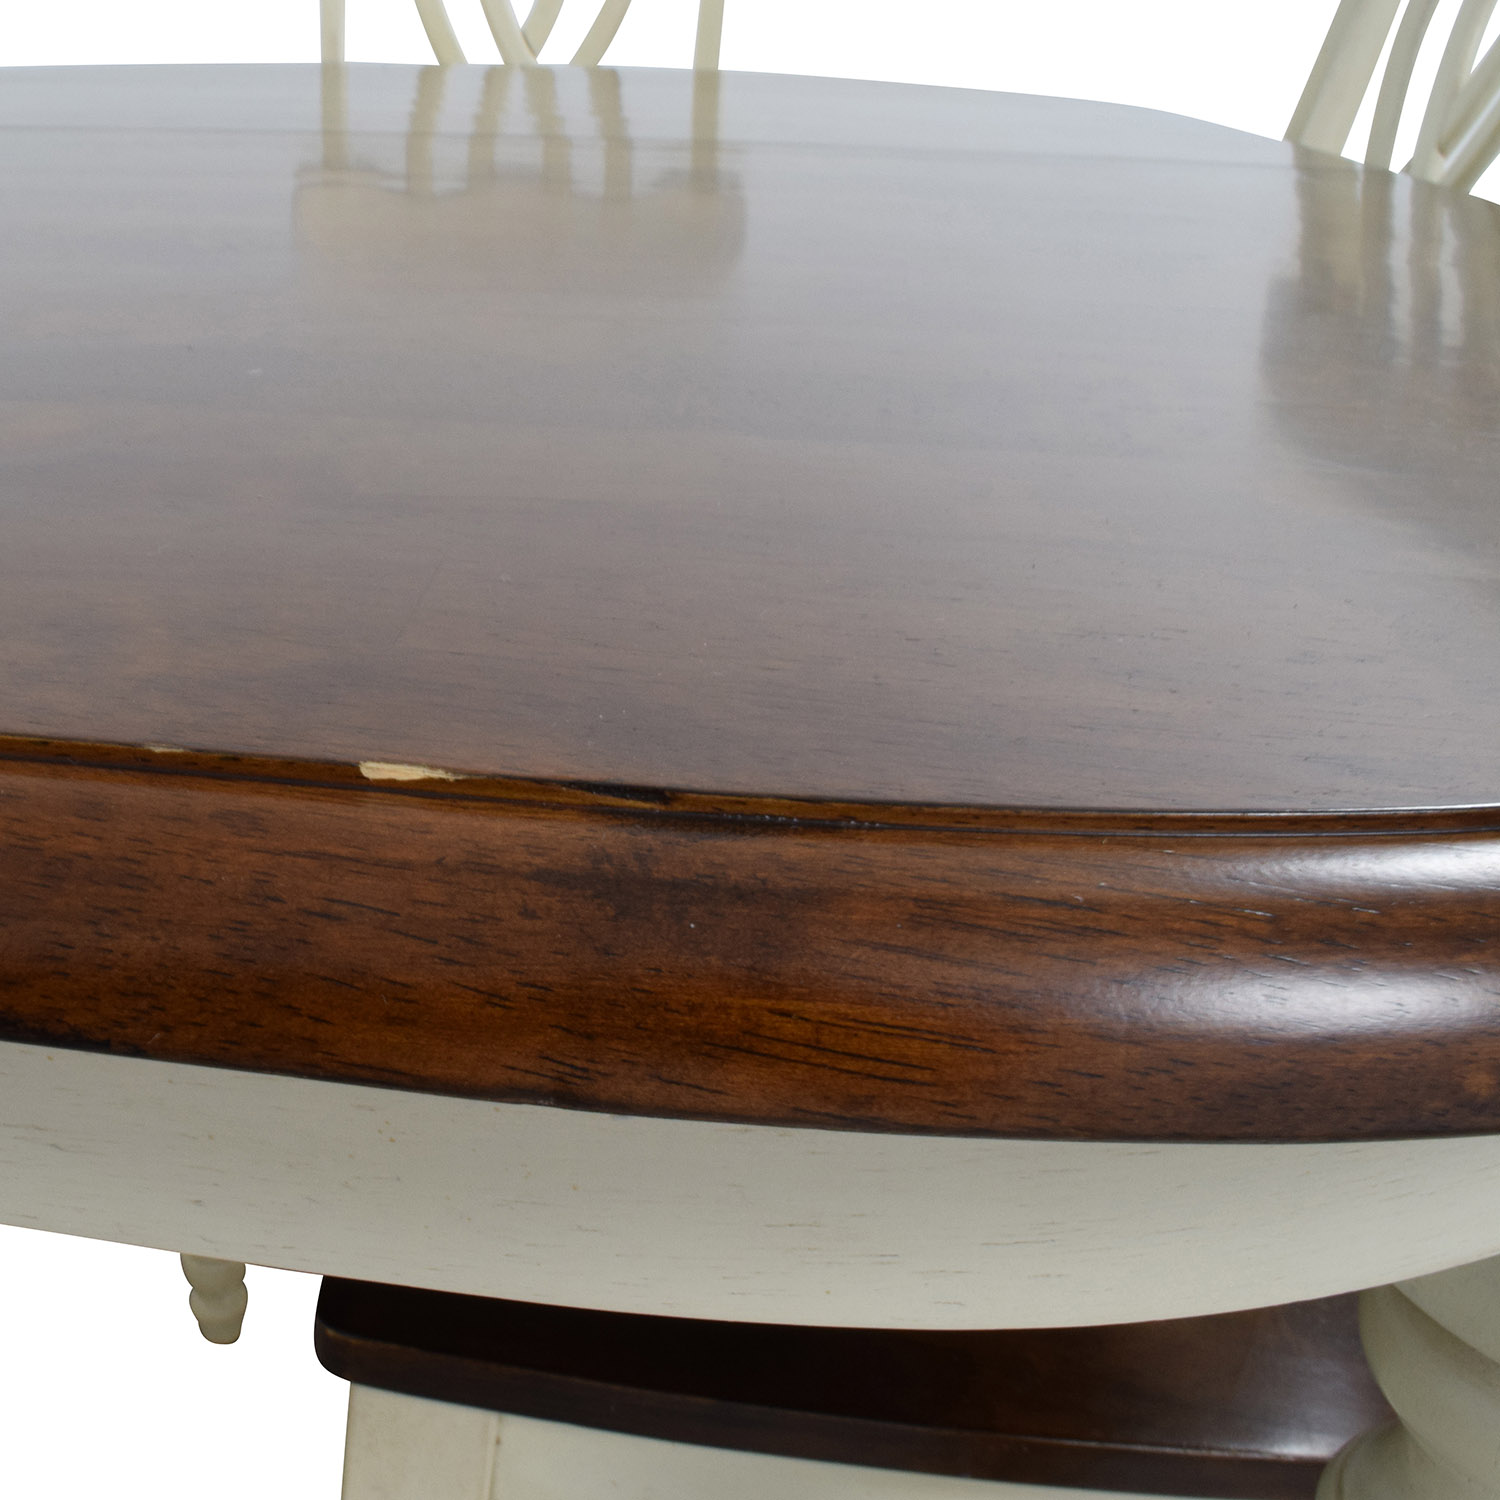 Extendable Wood Dining Table with Chairs used